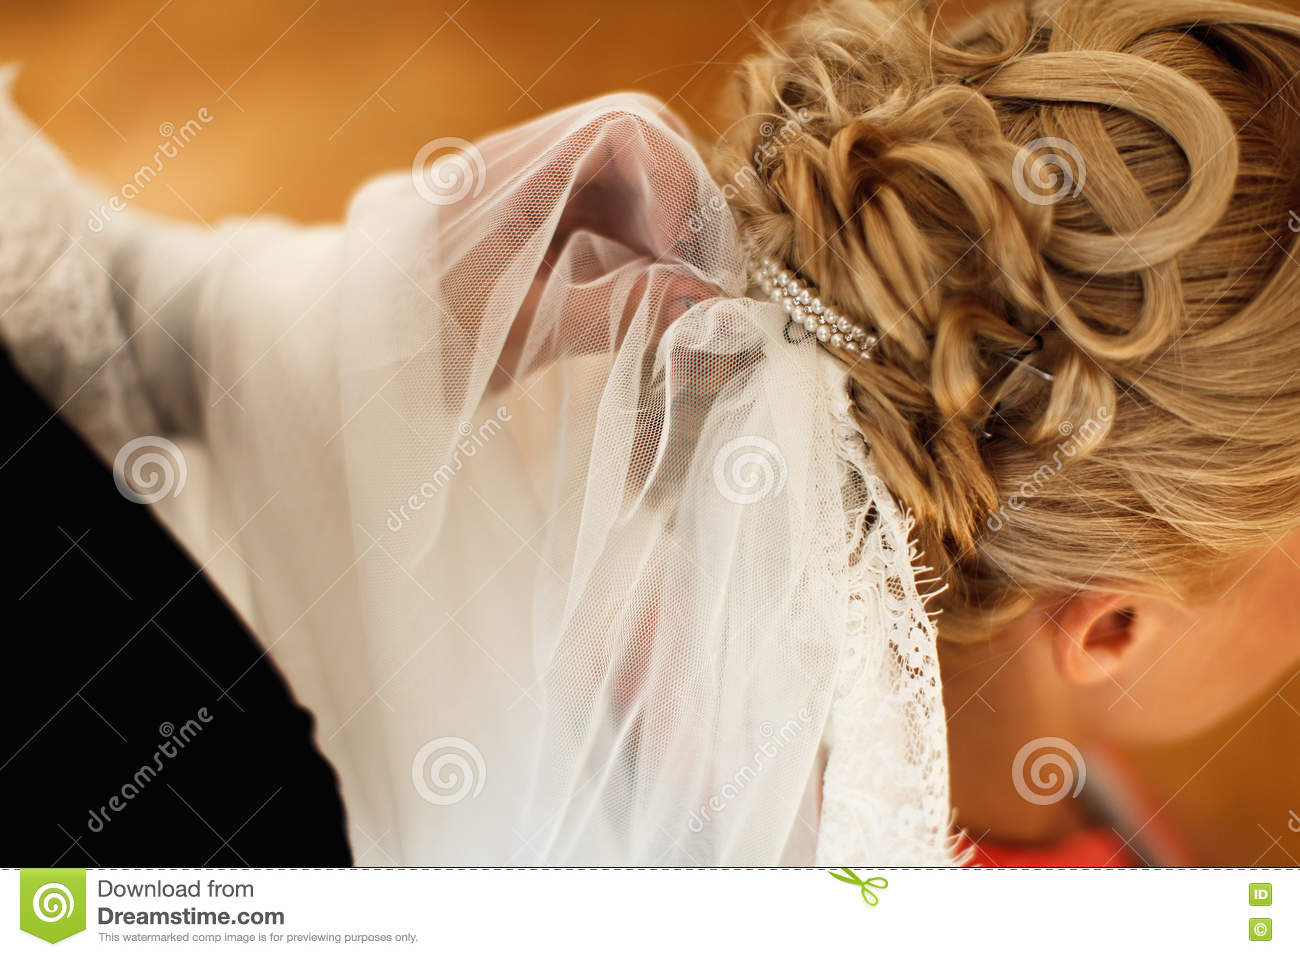 a4fef5ce767 Bridal Veil Is Put On A Lady s Hair Stock Photo - Image of ...